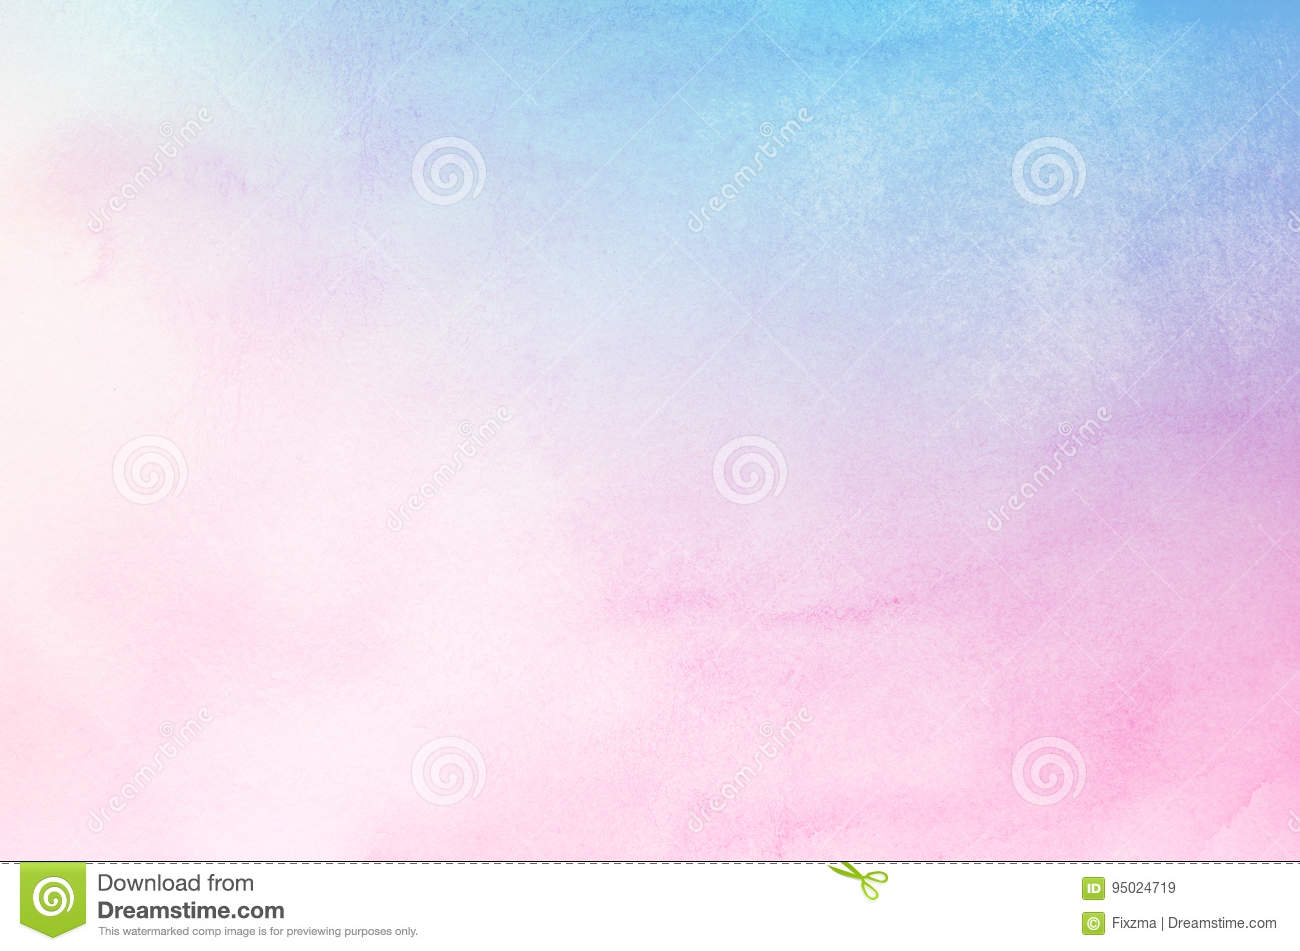 Abstract blue and pink pastel watercolor background